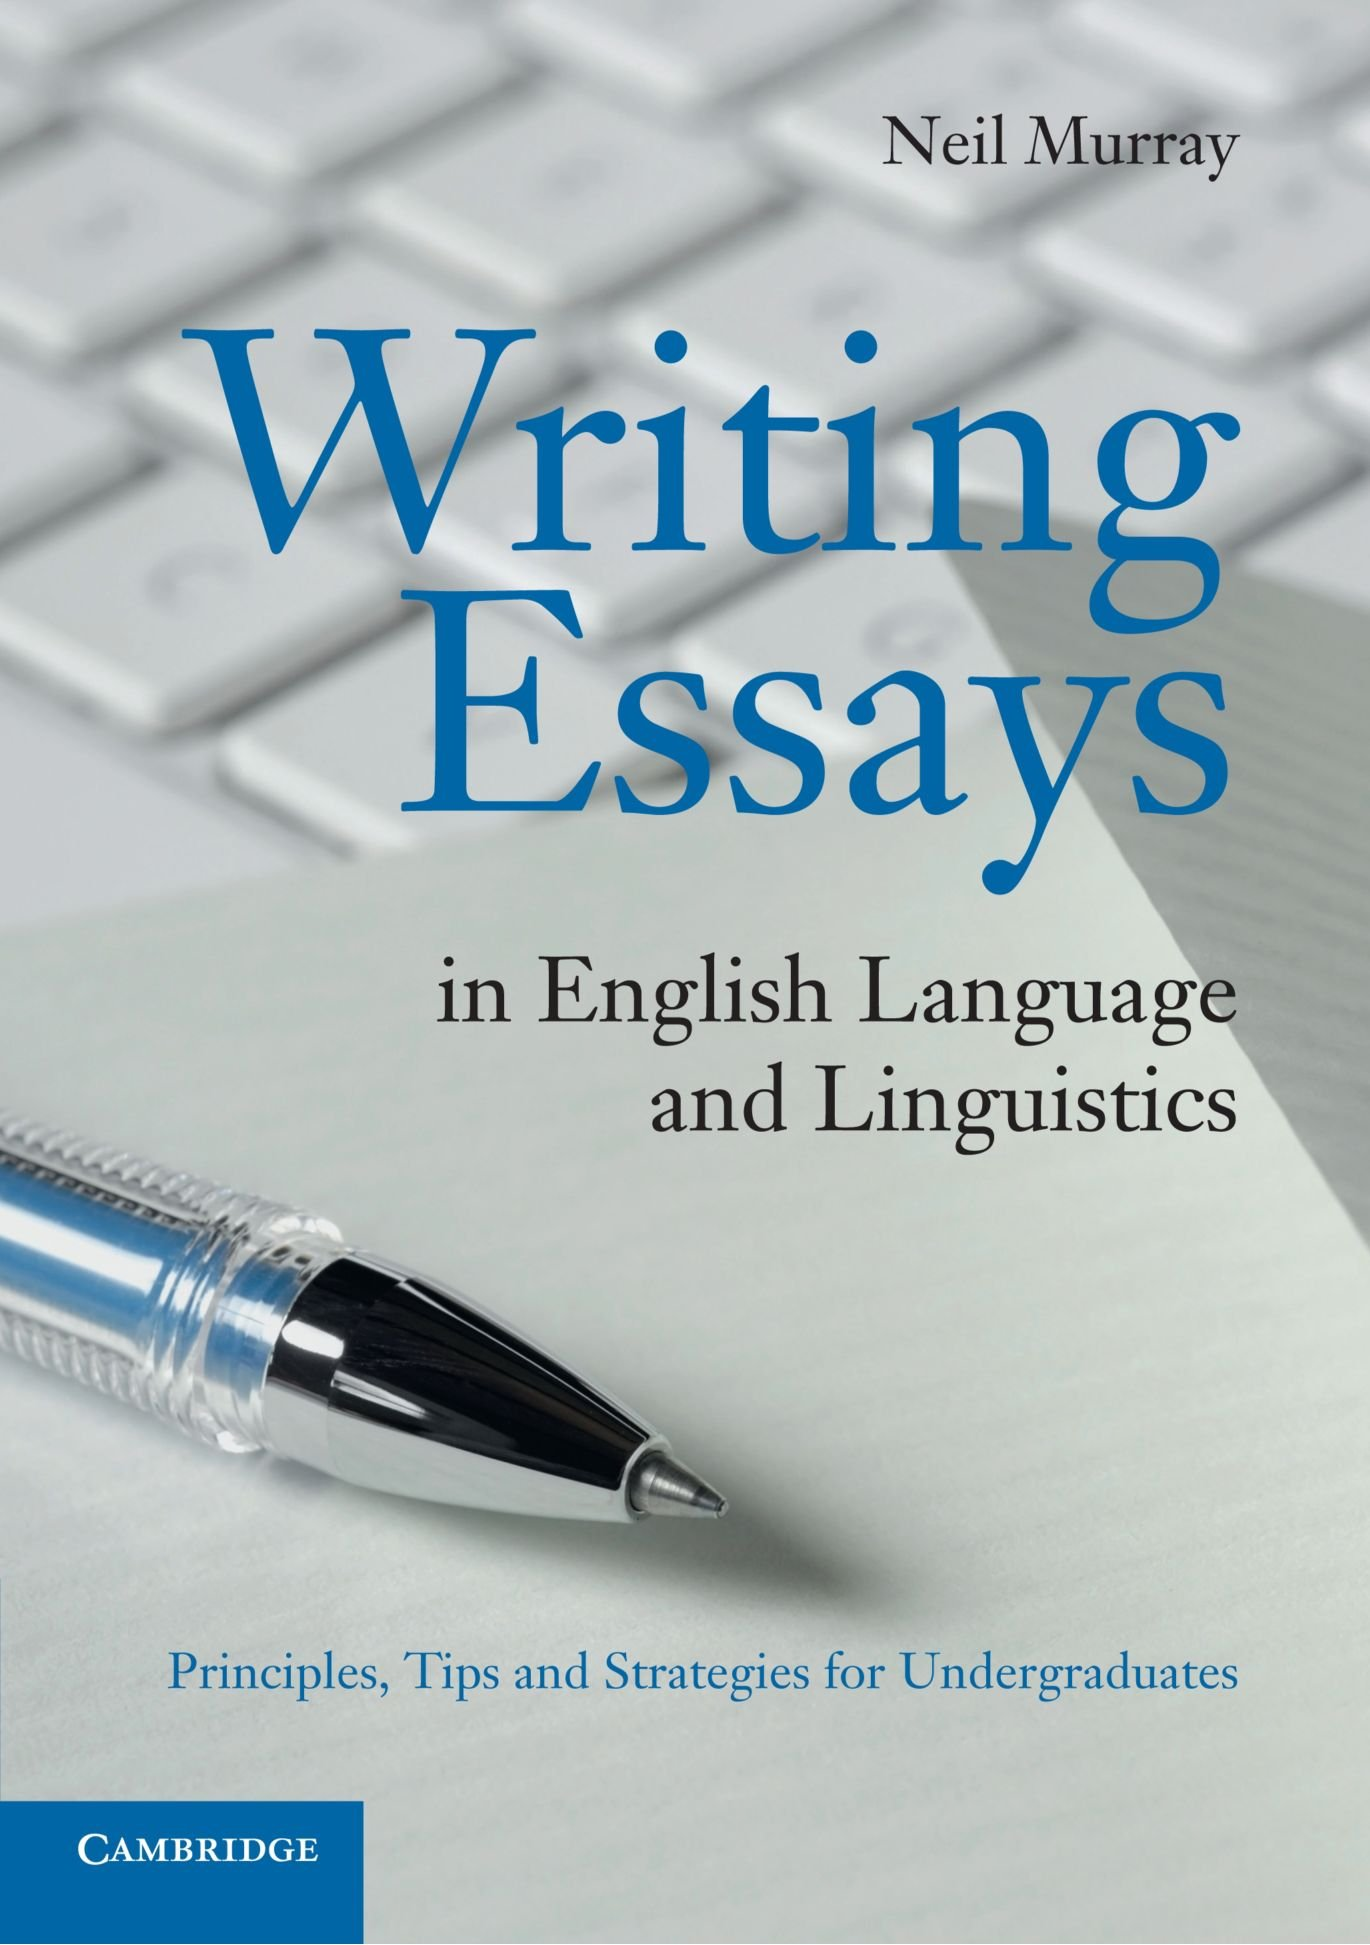 writing essays in english language and linguistics principles writing essays in english language and linguistics principles tips and strategies for undergraduates amazon co uk neil murray 9789812794154 books